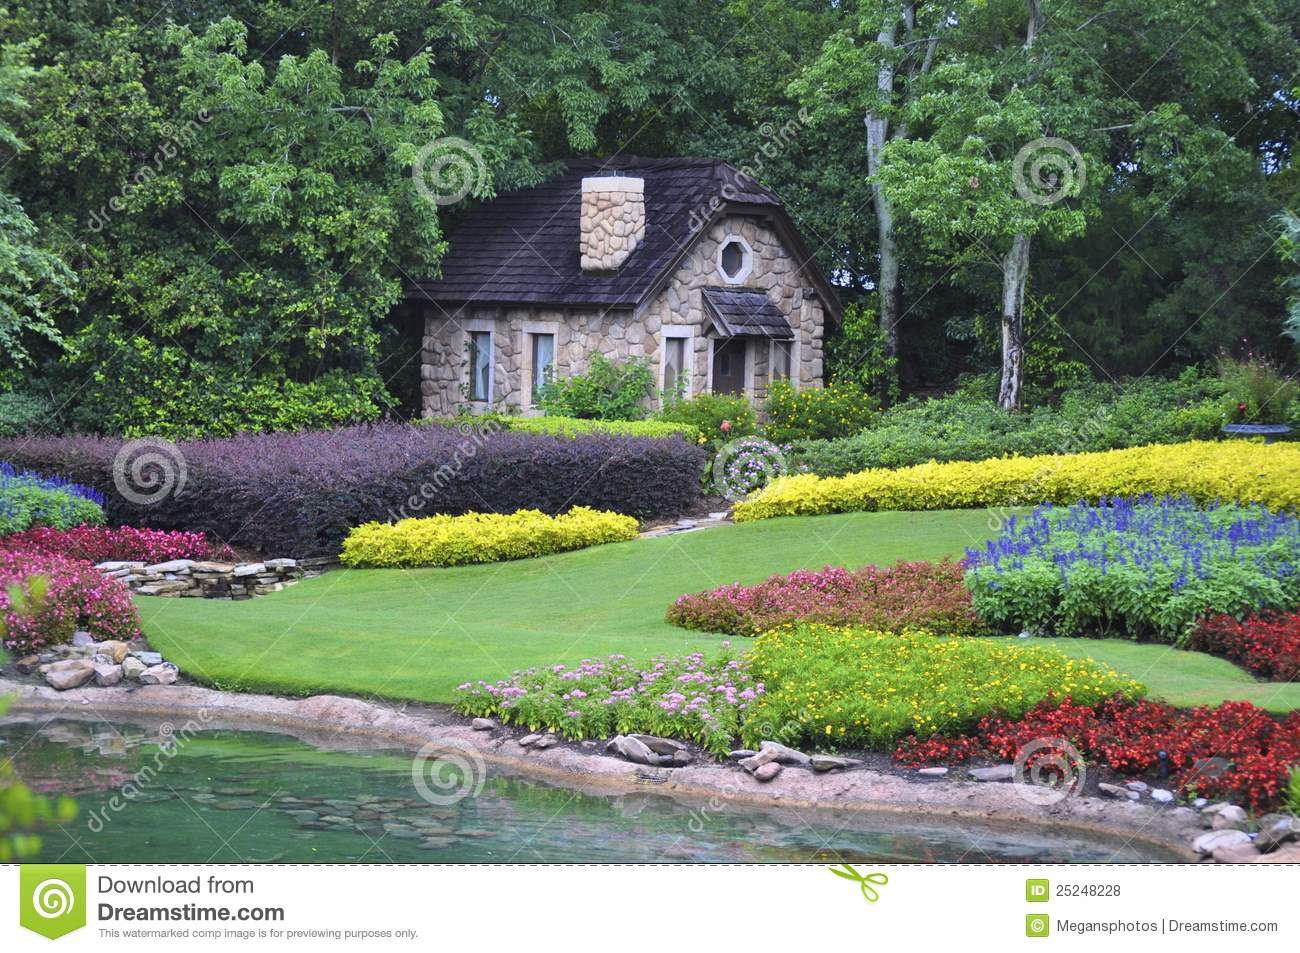 Cottage in the woods royalty free stock photos image - Beau petit jardin ...